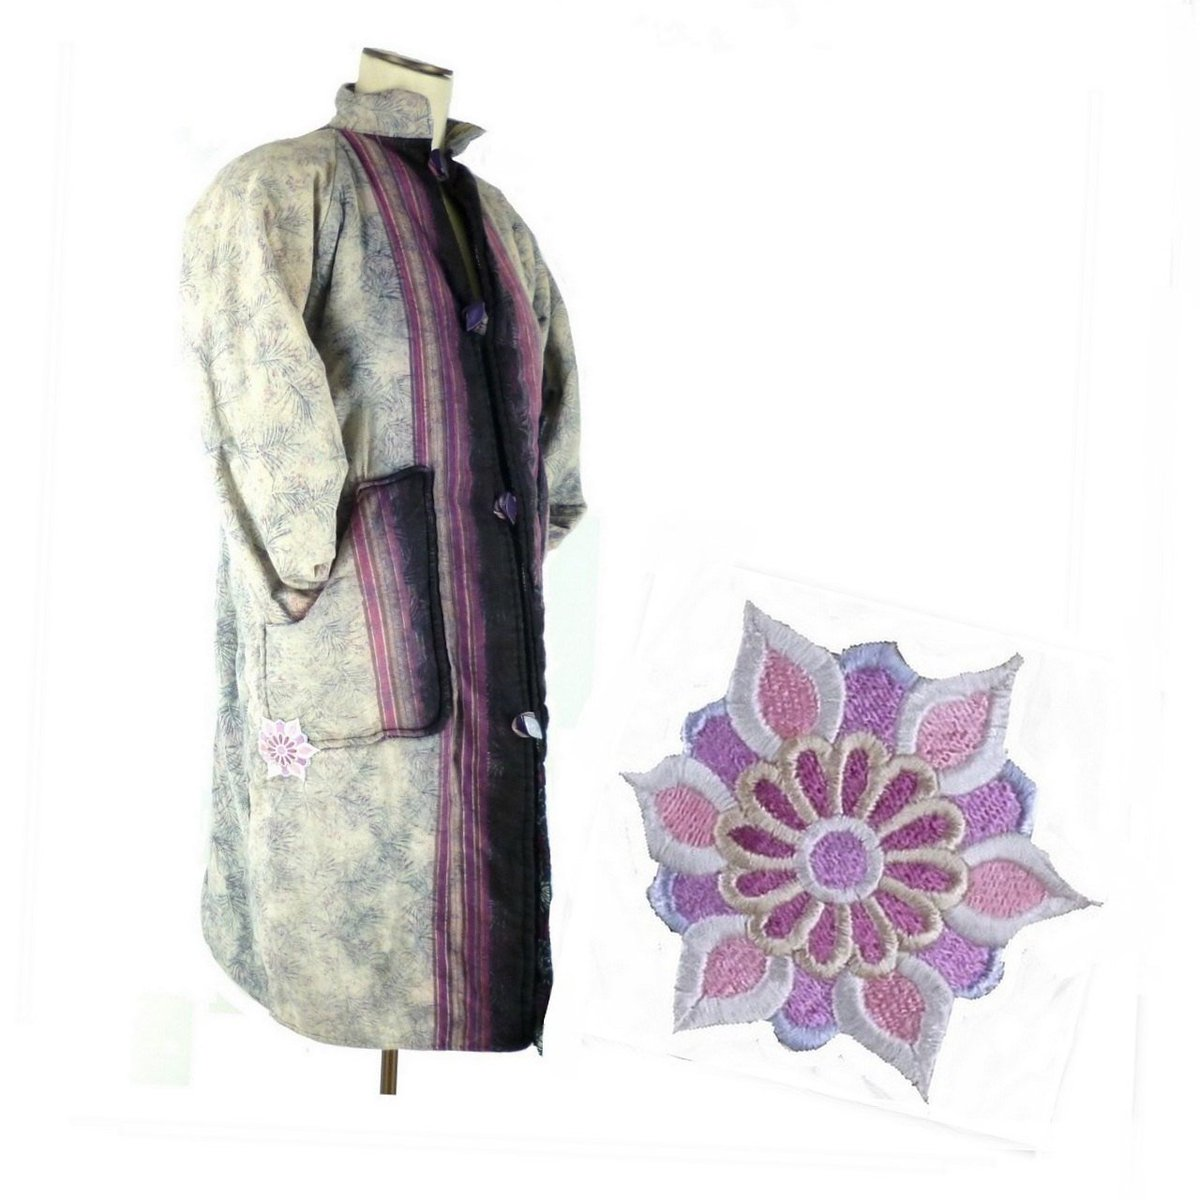 Ombre Bohemian Quilt Jacket, Feather Print with Custom Applique http://etsy.me/1WB0Yli #Etsy #DrapedBlouse pic.twitter.com/FAXesh9uX9